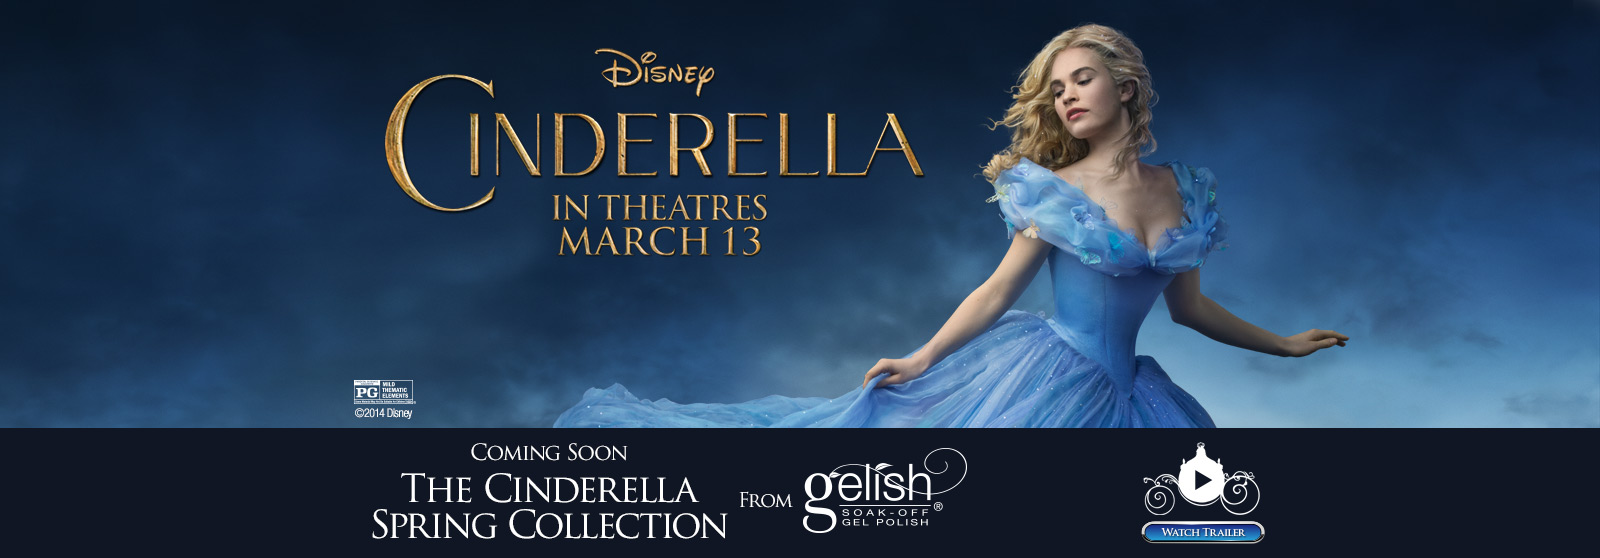 Coming Soon - The Cinderella Spring Collection from Gelish